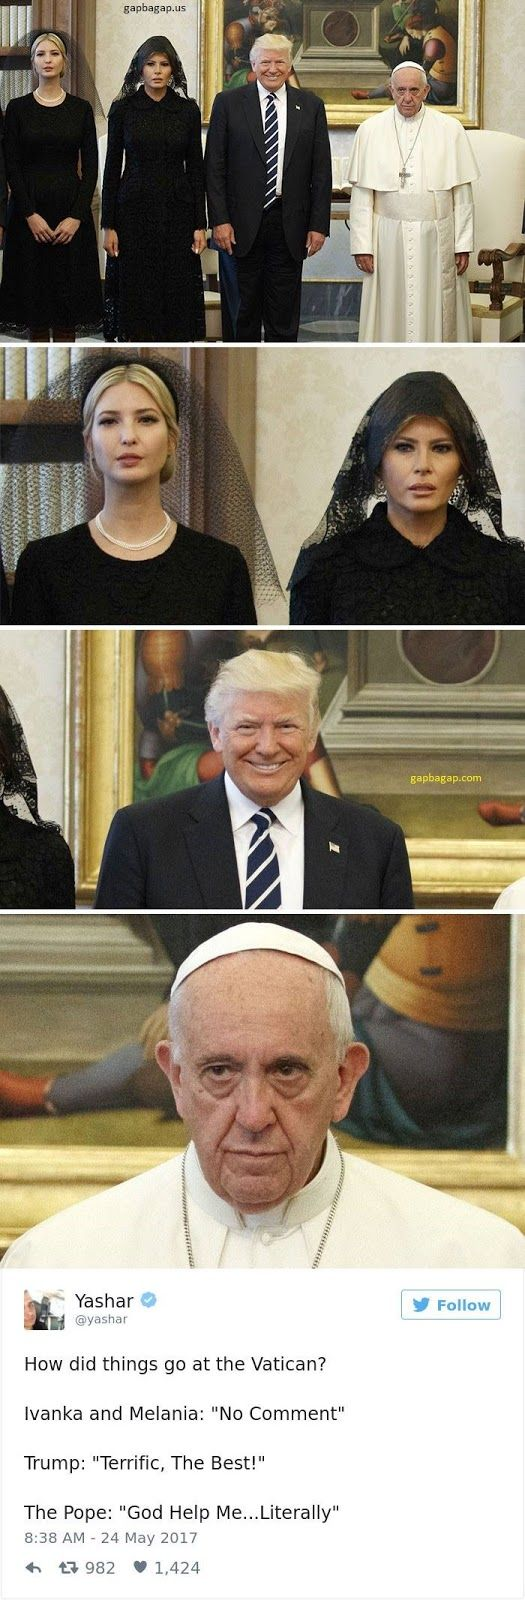 Funny Memes About Donald Trump's meeting with Pope Francis